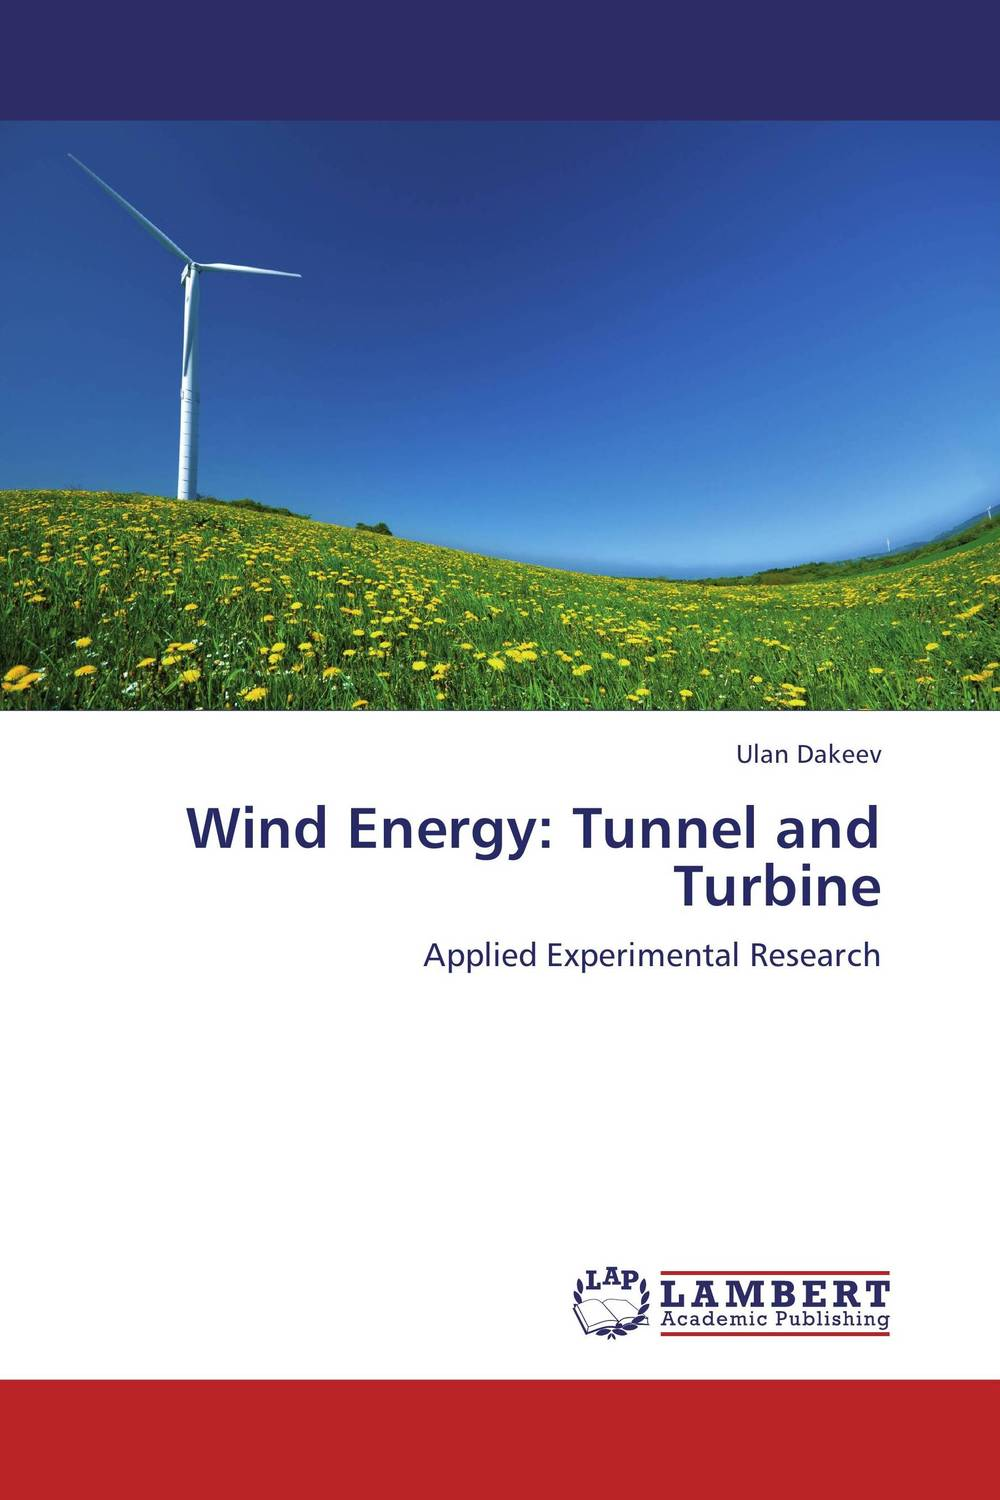 Wind Energy: Tunnel and Turbine fabrication of a wind turbine with different pitch angle of the blade